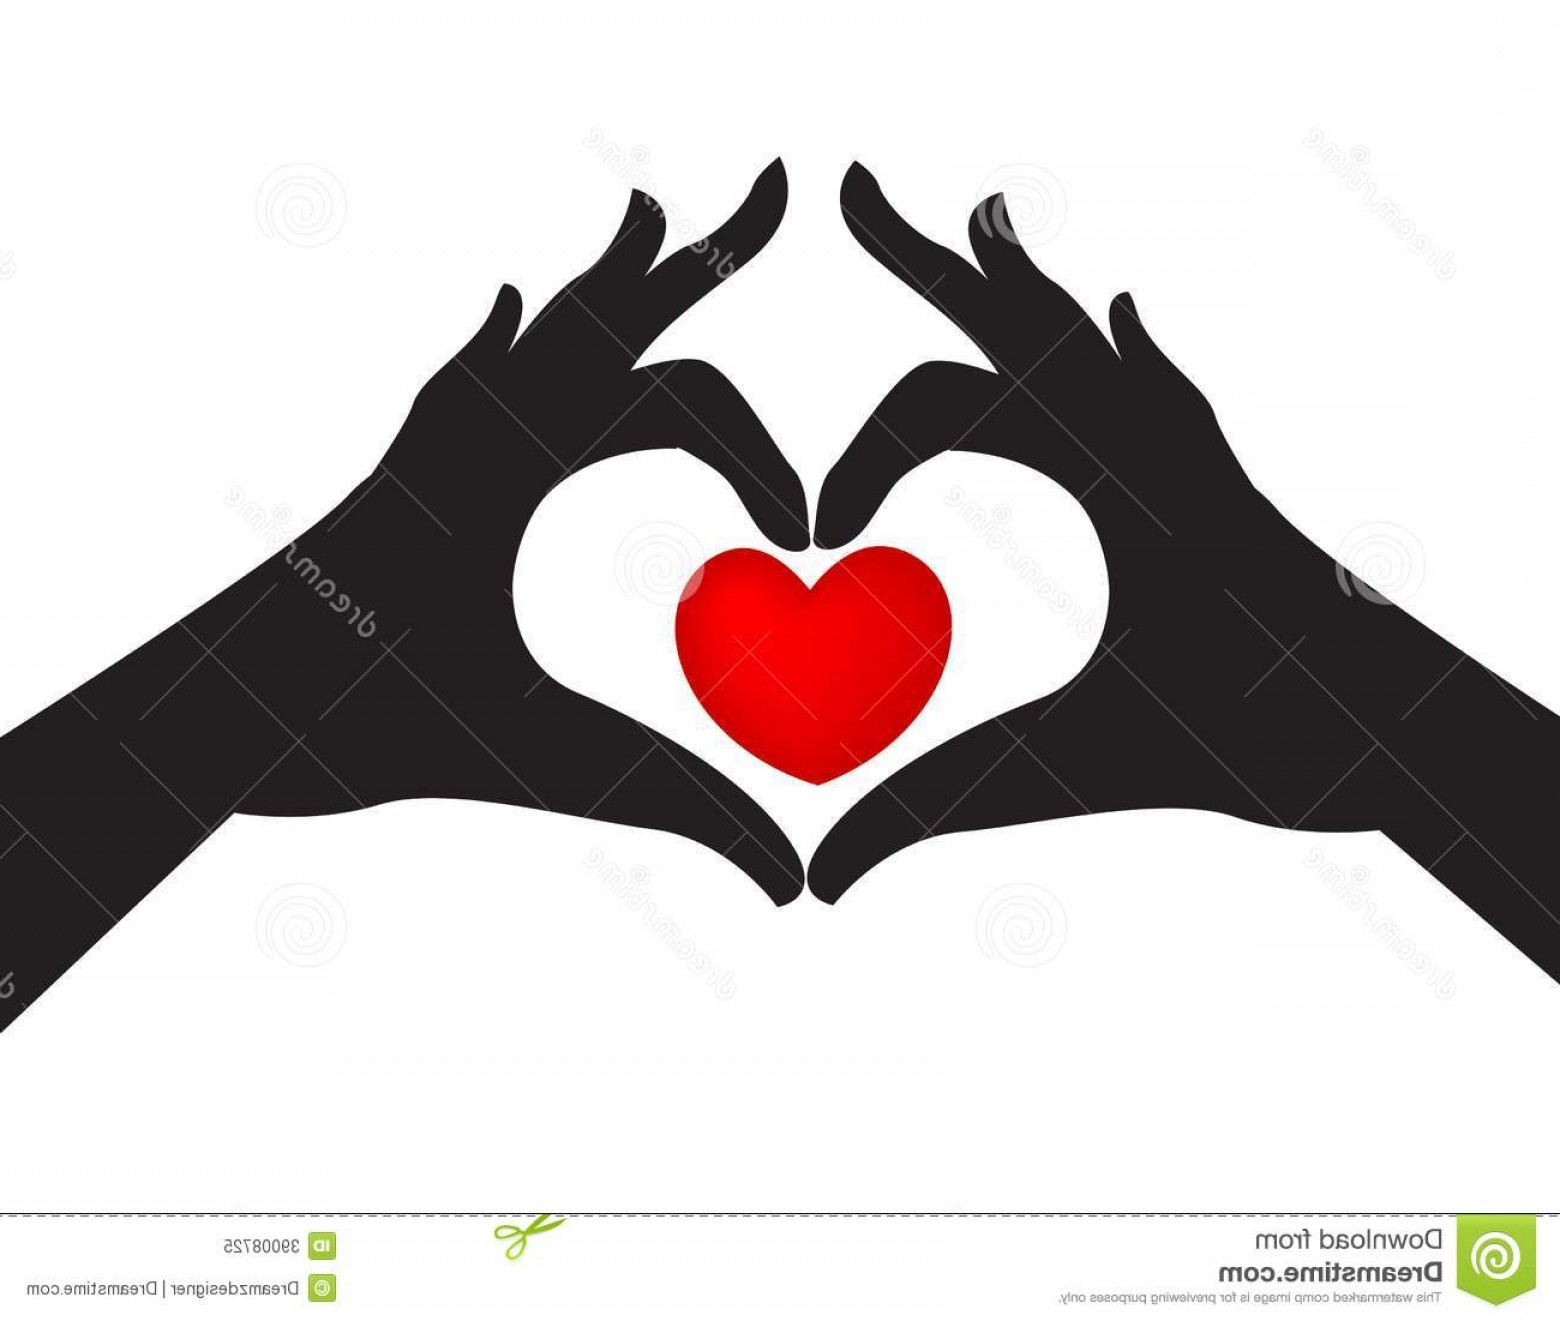 Heart In Hand Vector Clip Art: Royalty Free Stock Photo Silhouetted Hands Love Heart Pair Around Red White Studio Background Image